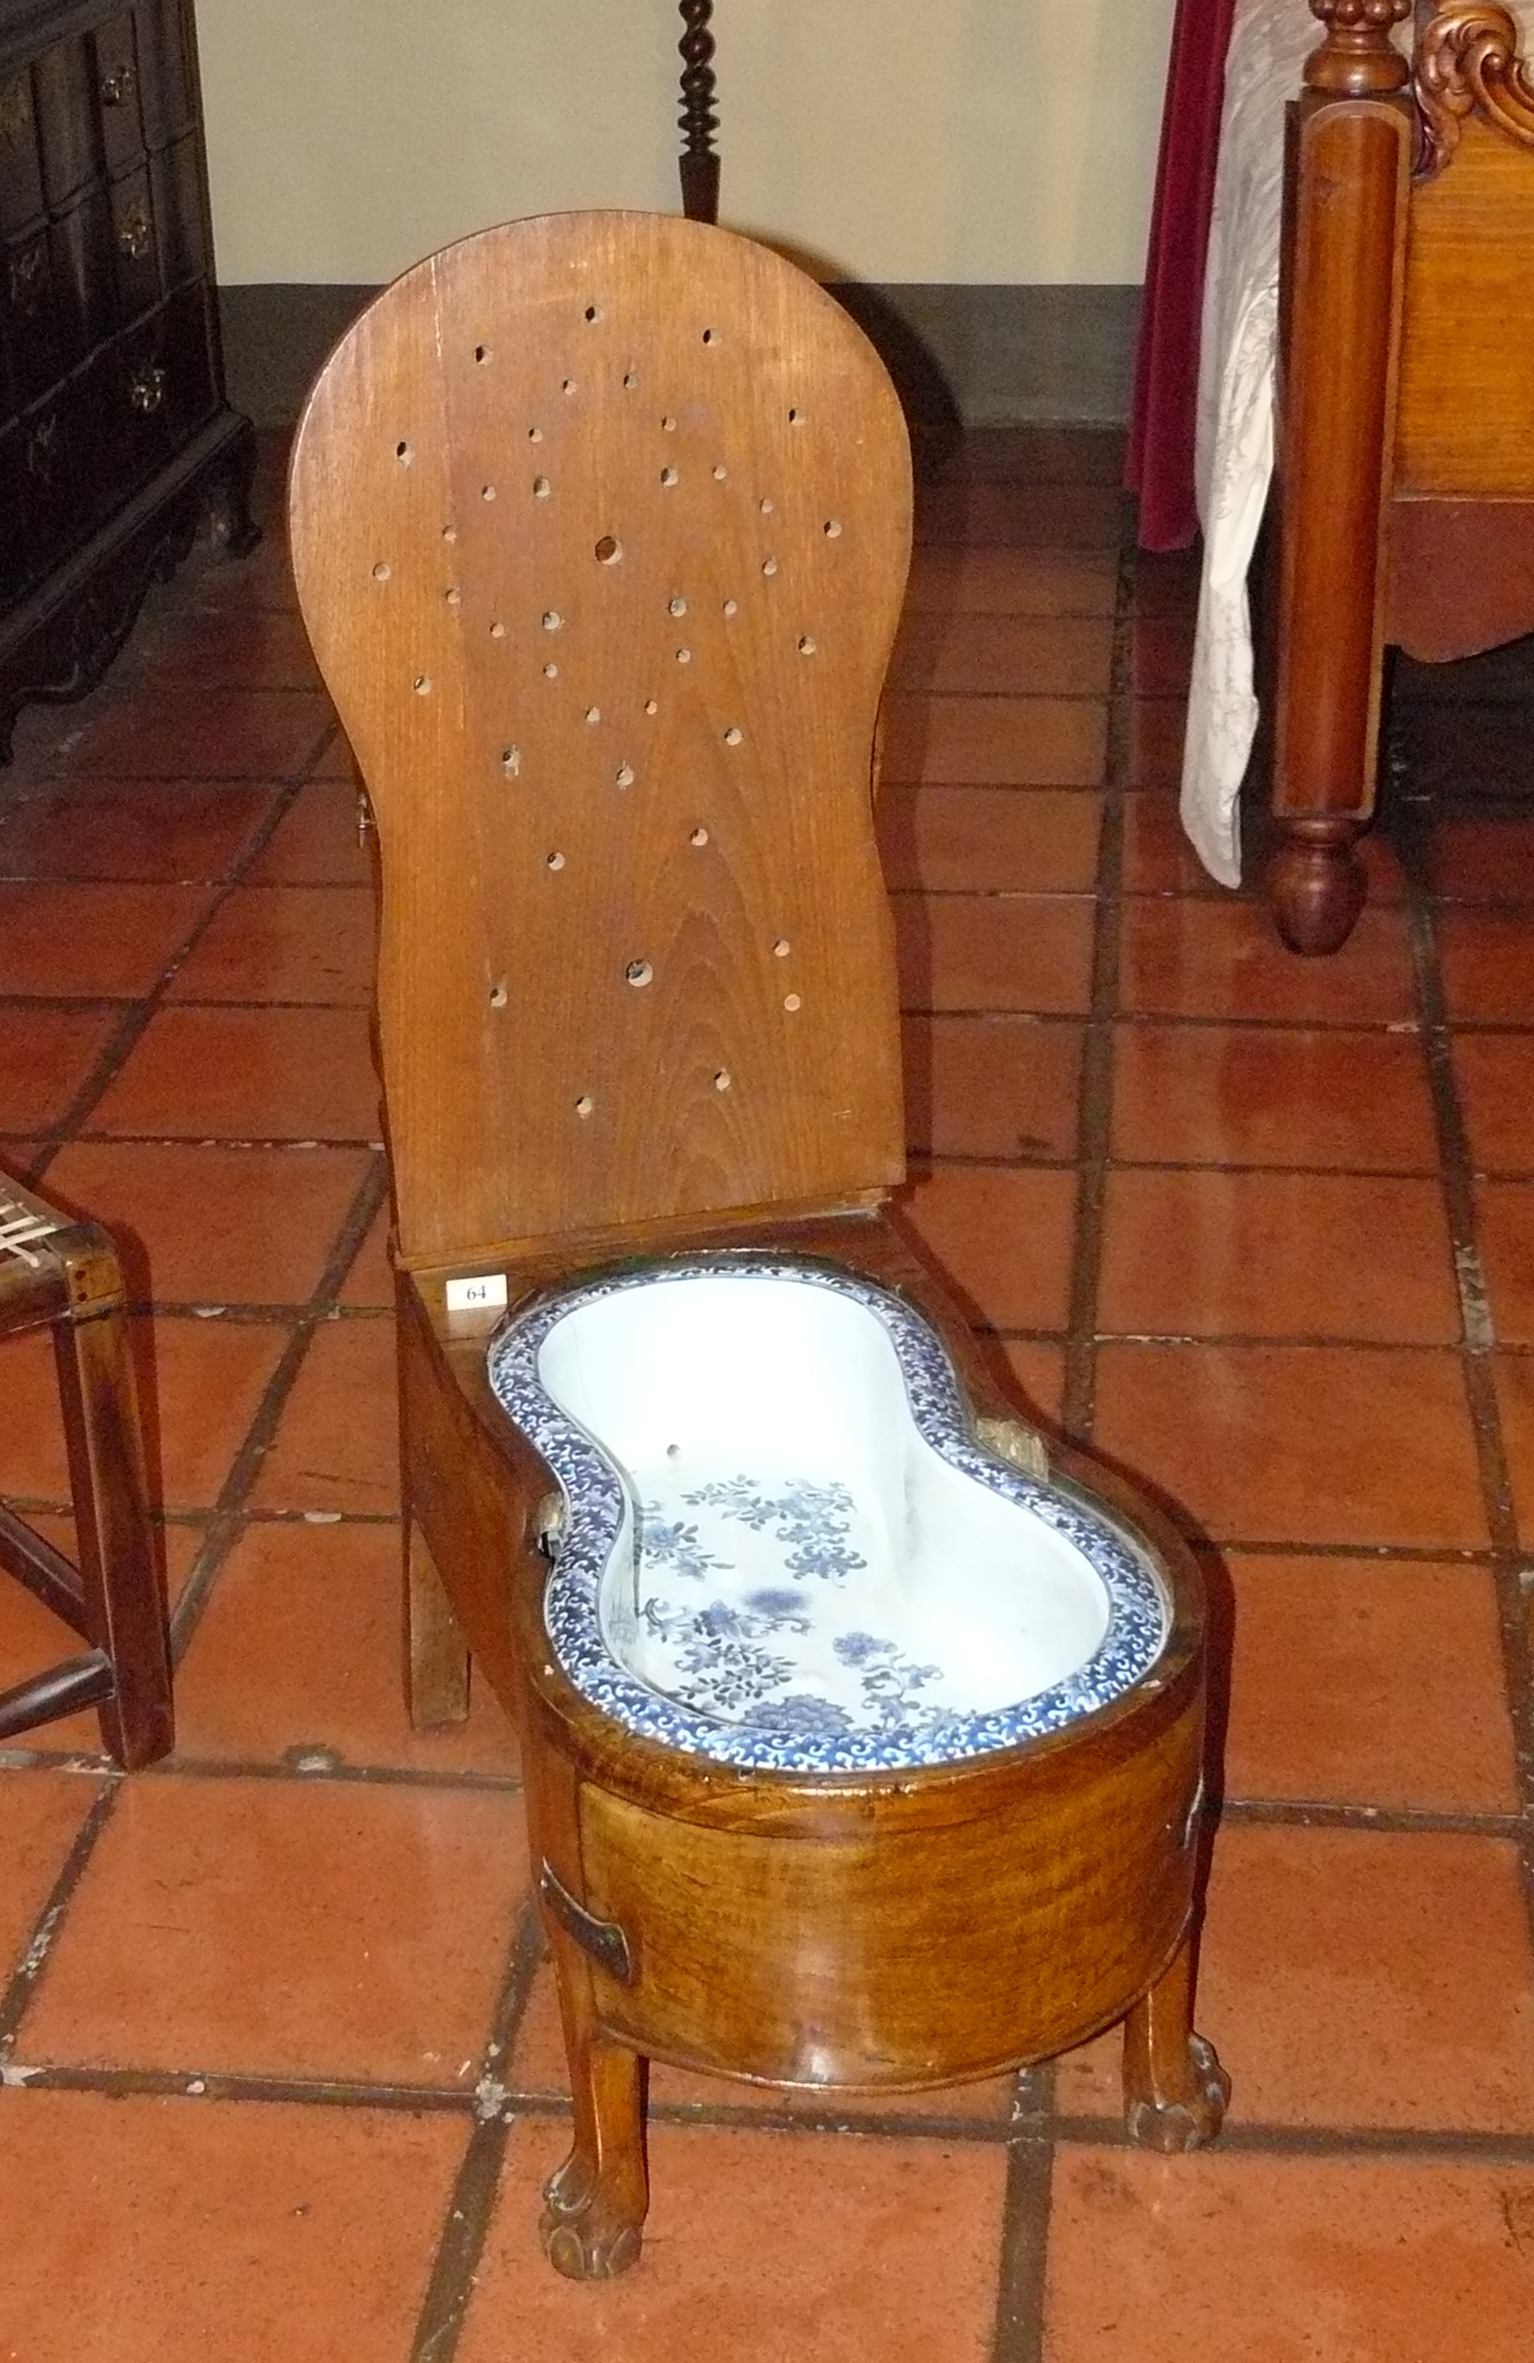 MyFrenchLife™ – MyFrenchLife.org – France - bidet – cultural differences debate